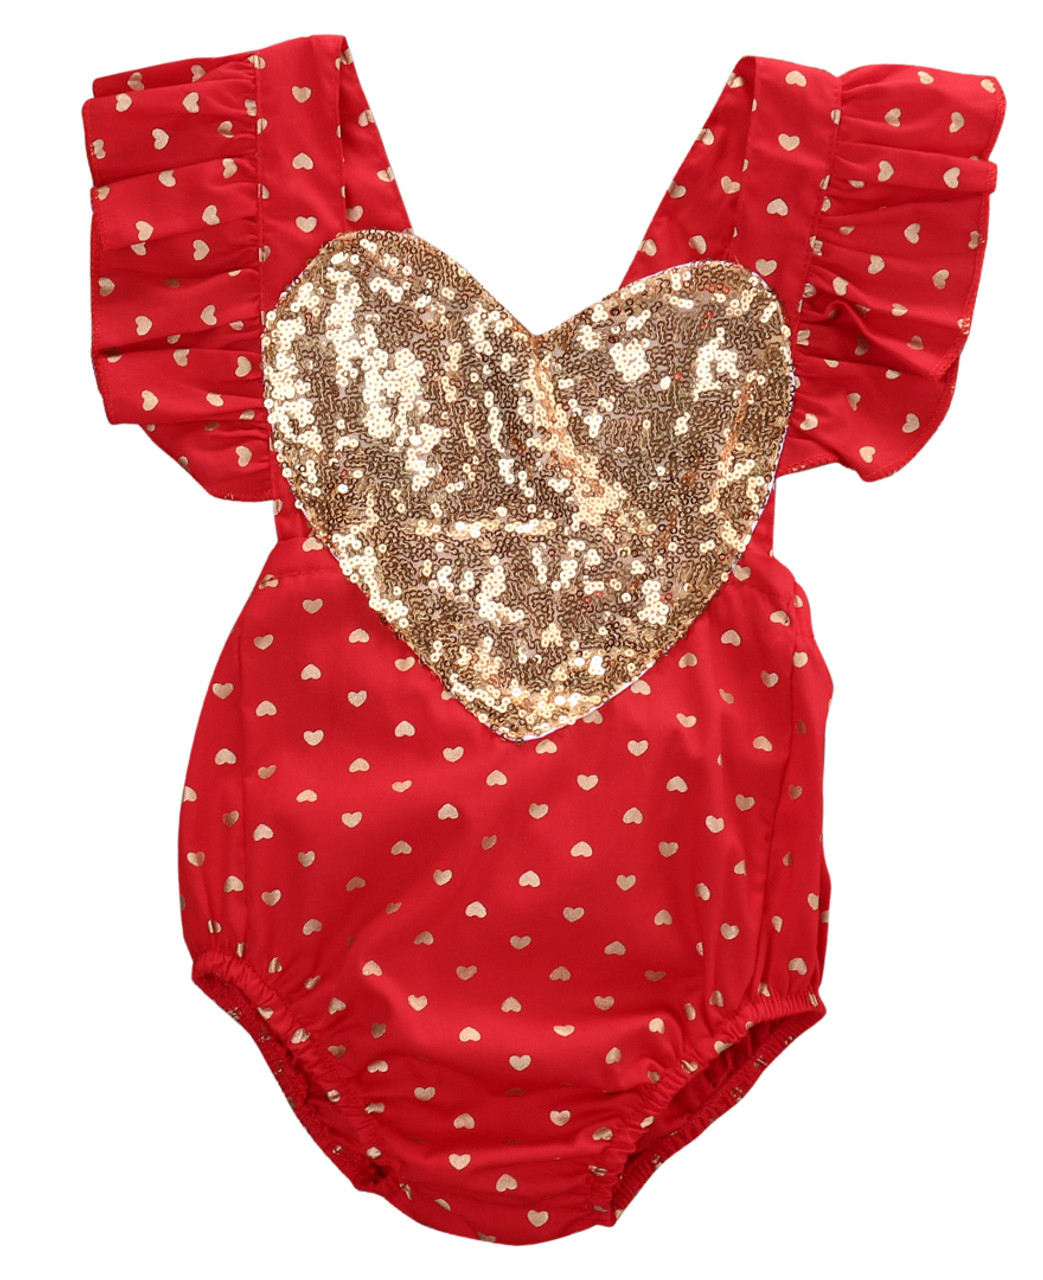 e1c048343852 Baby Valentine s Day Gold Sequin Heart Romper - Red - front